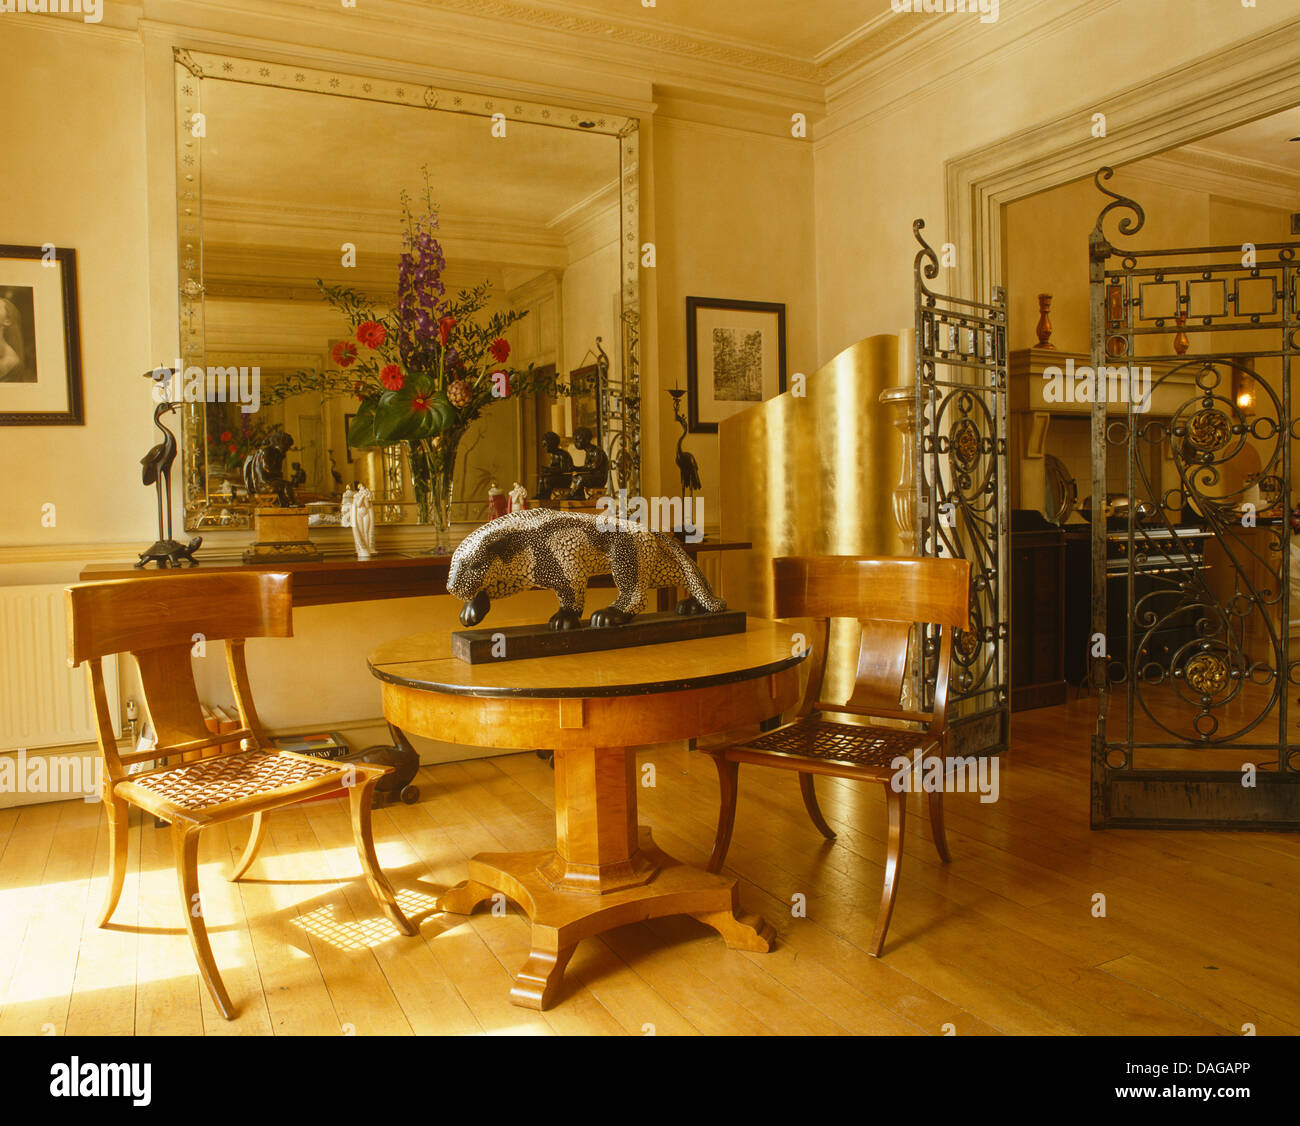 Antique Chairs And Biedermeier Table In Dining Room With